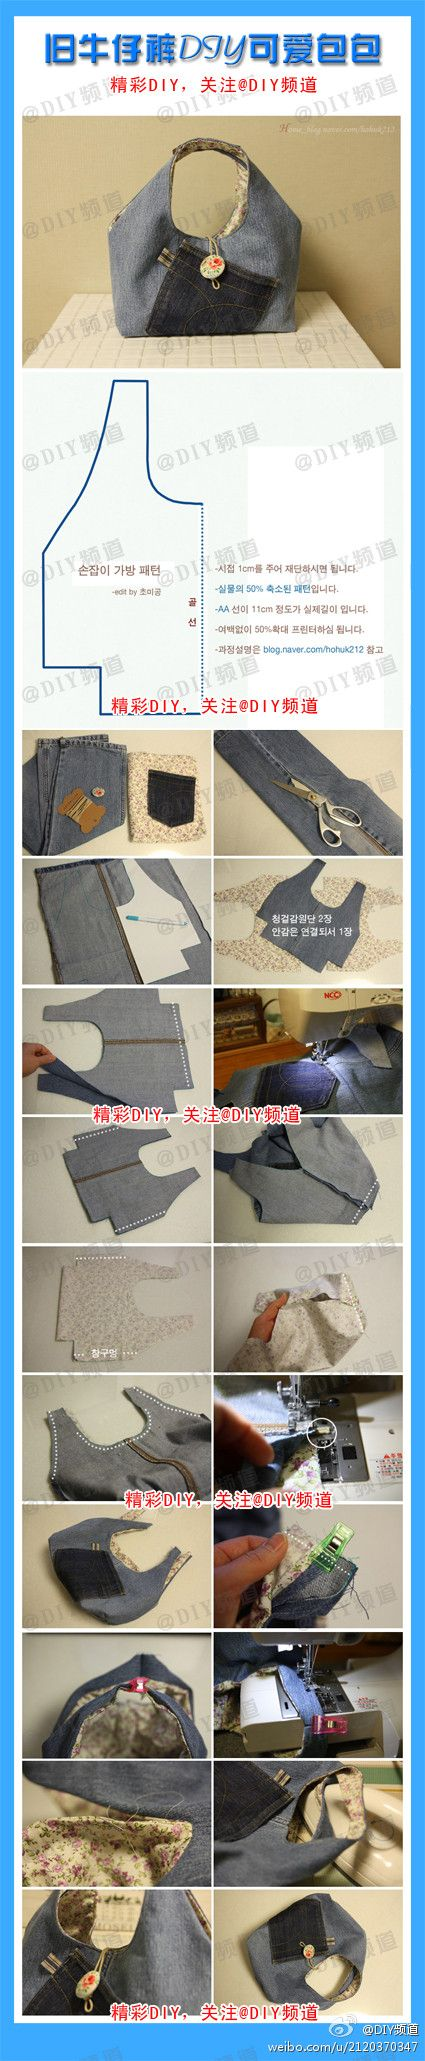 Recycled jeans bag photo tutorial.